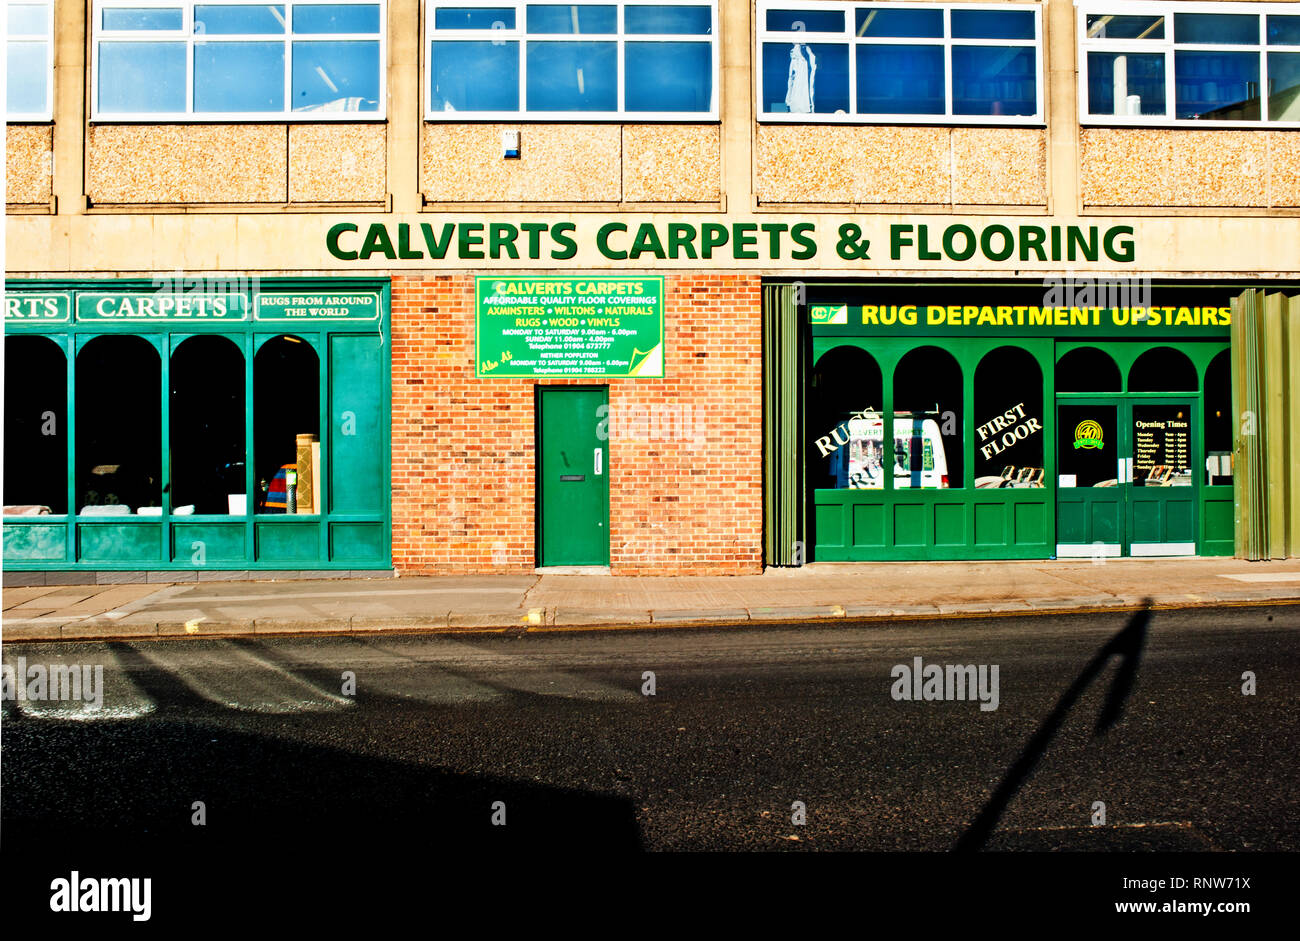 Calverts Carpets and Flooring, The Stonebow, York, England - Stock Image